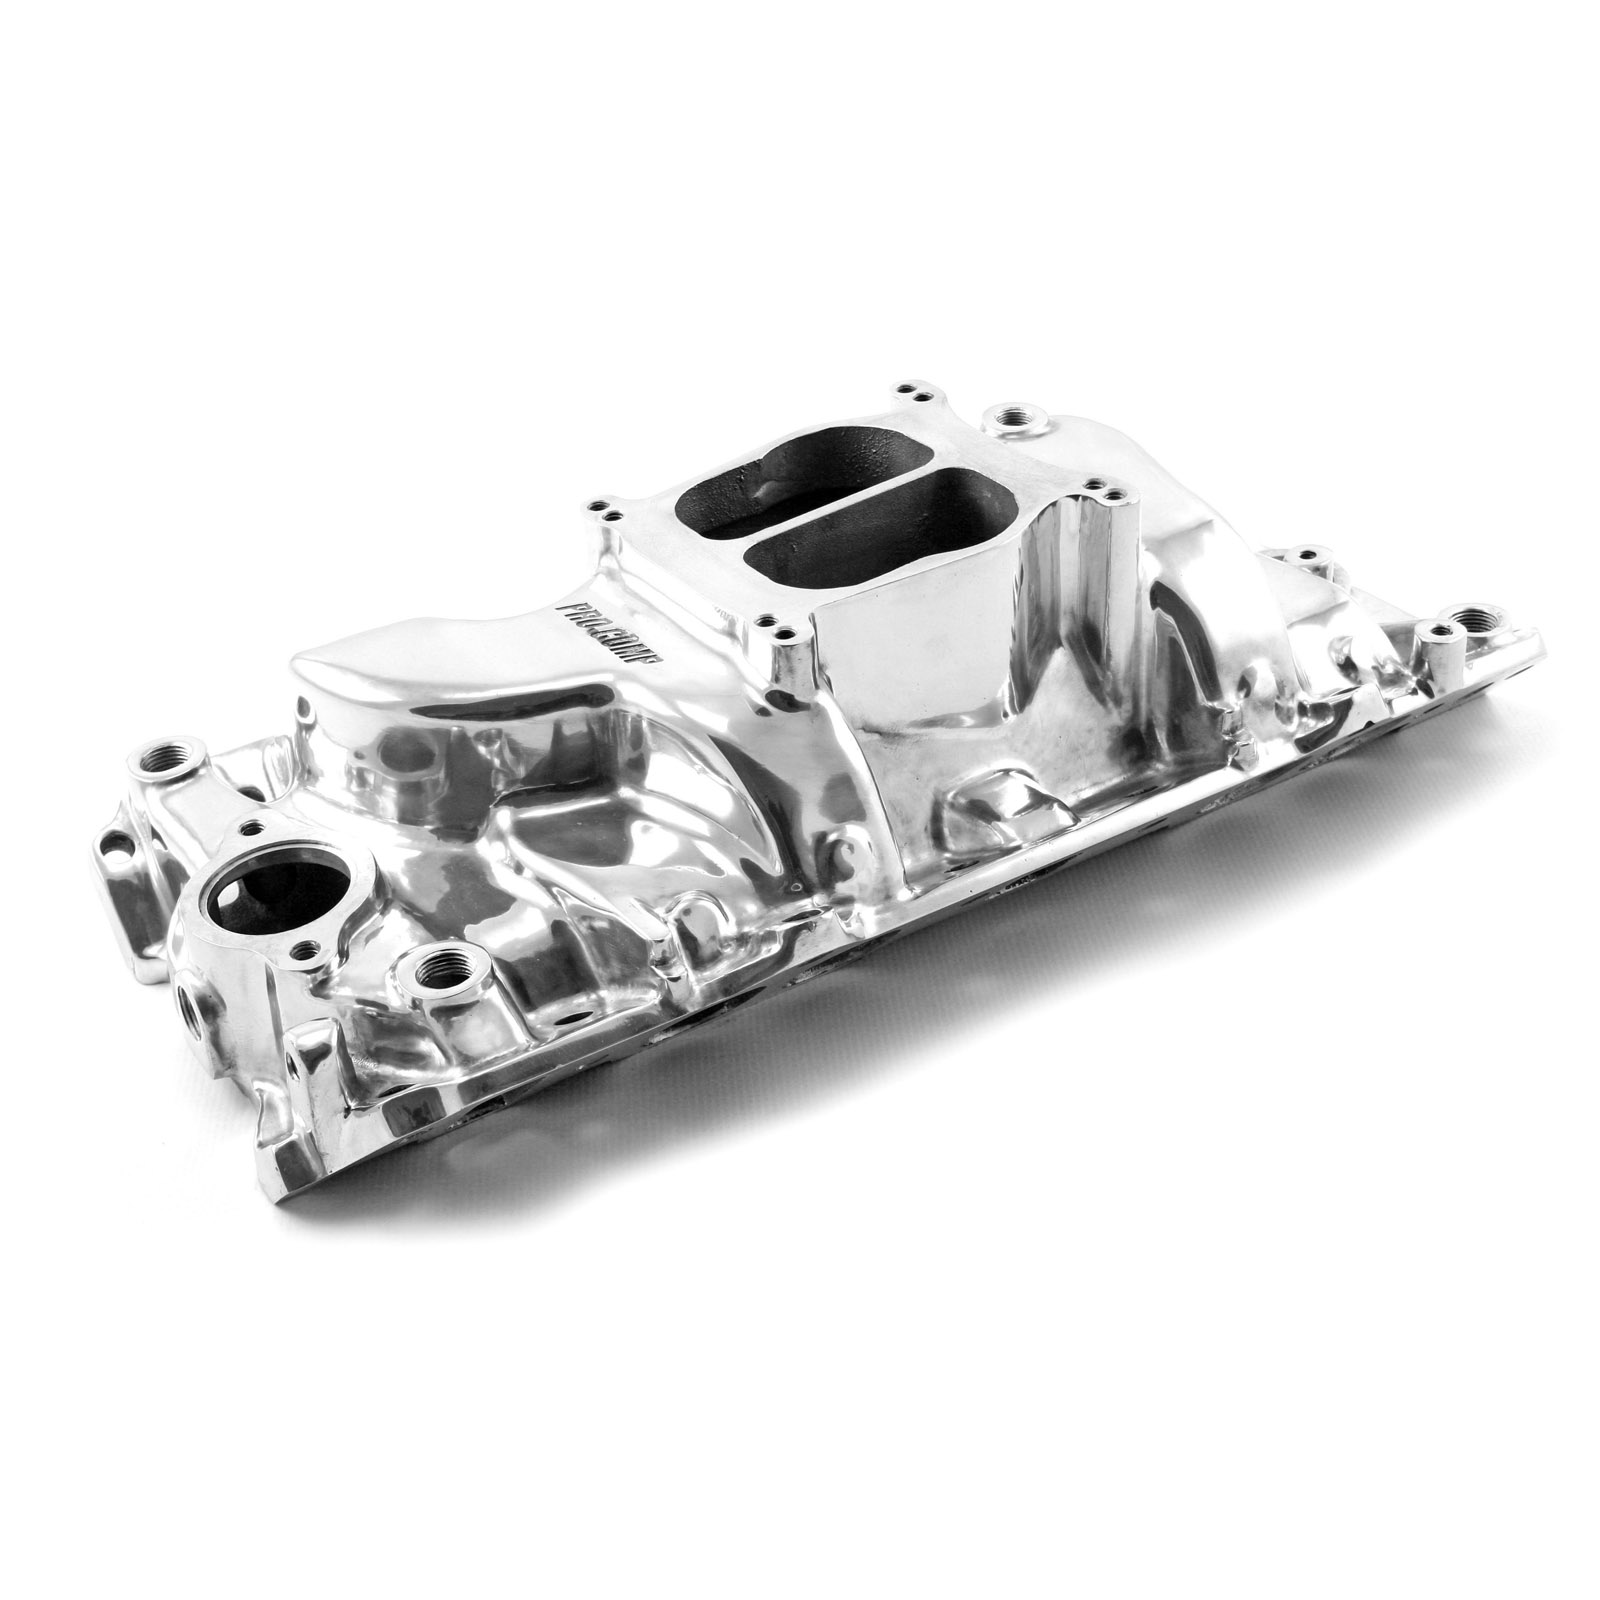 Chevy BBC 454 Holeshot Oval Port Polished Intake Manifold